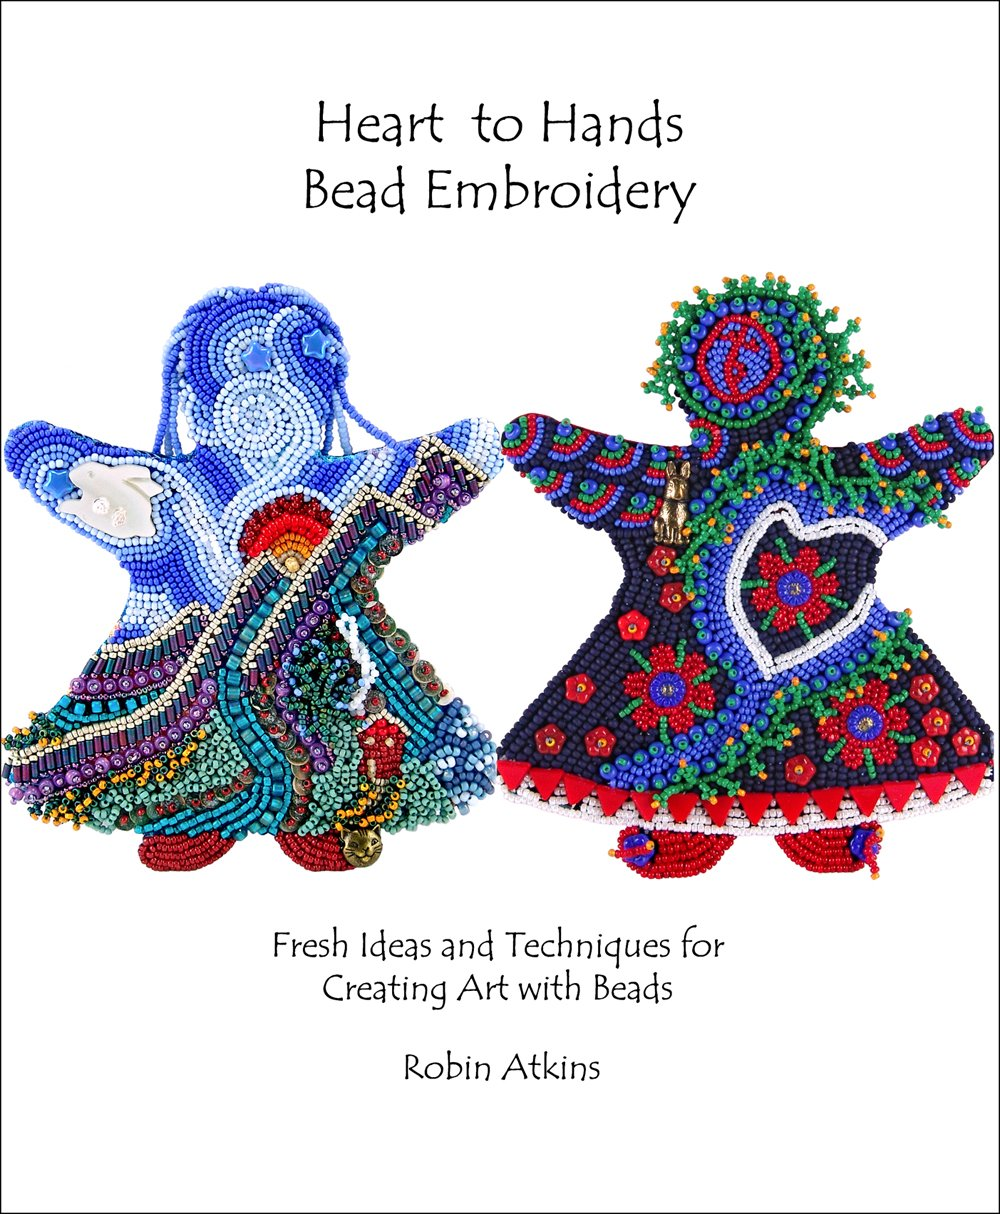 Heart to Hands Bead Embroidery pdf